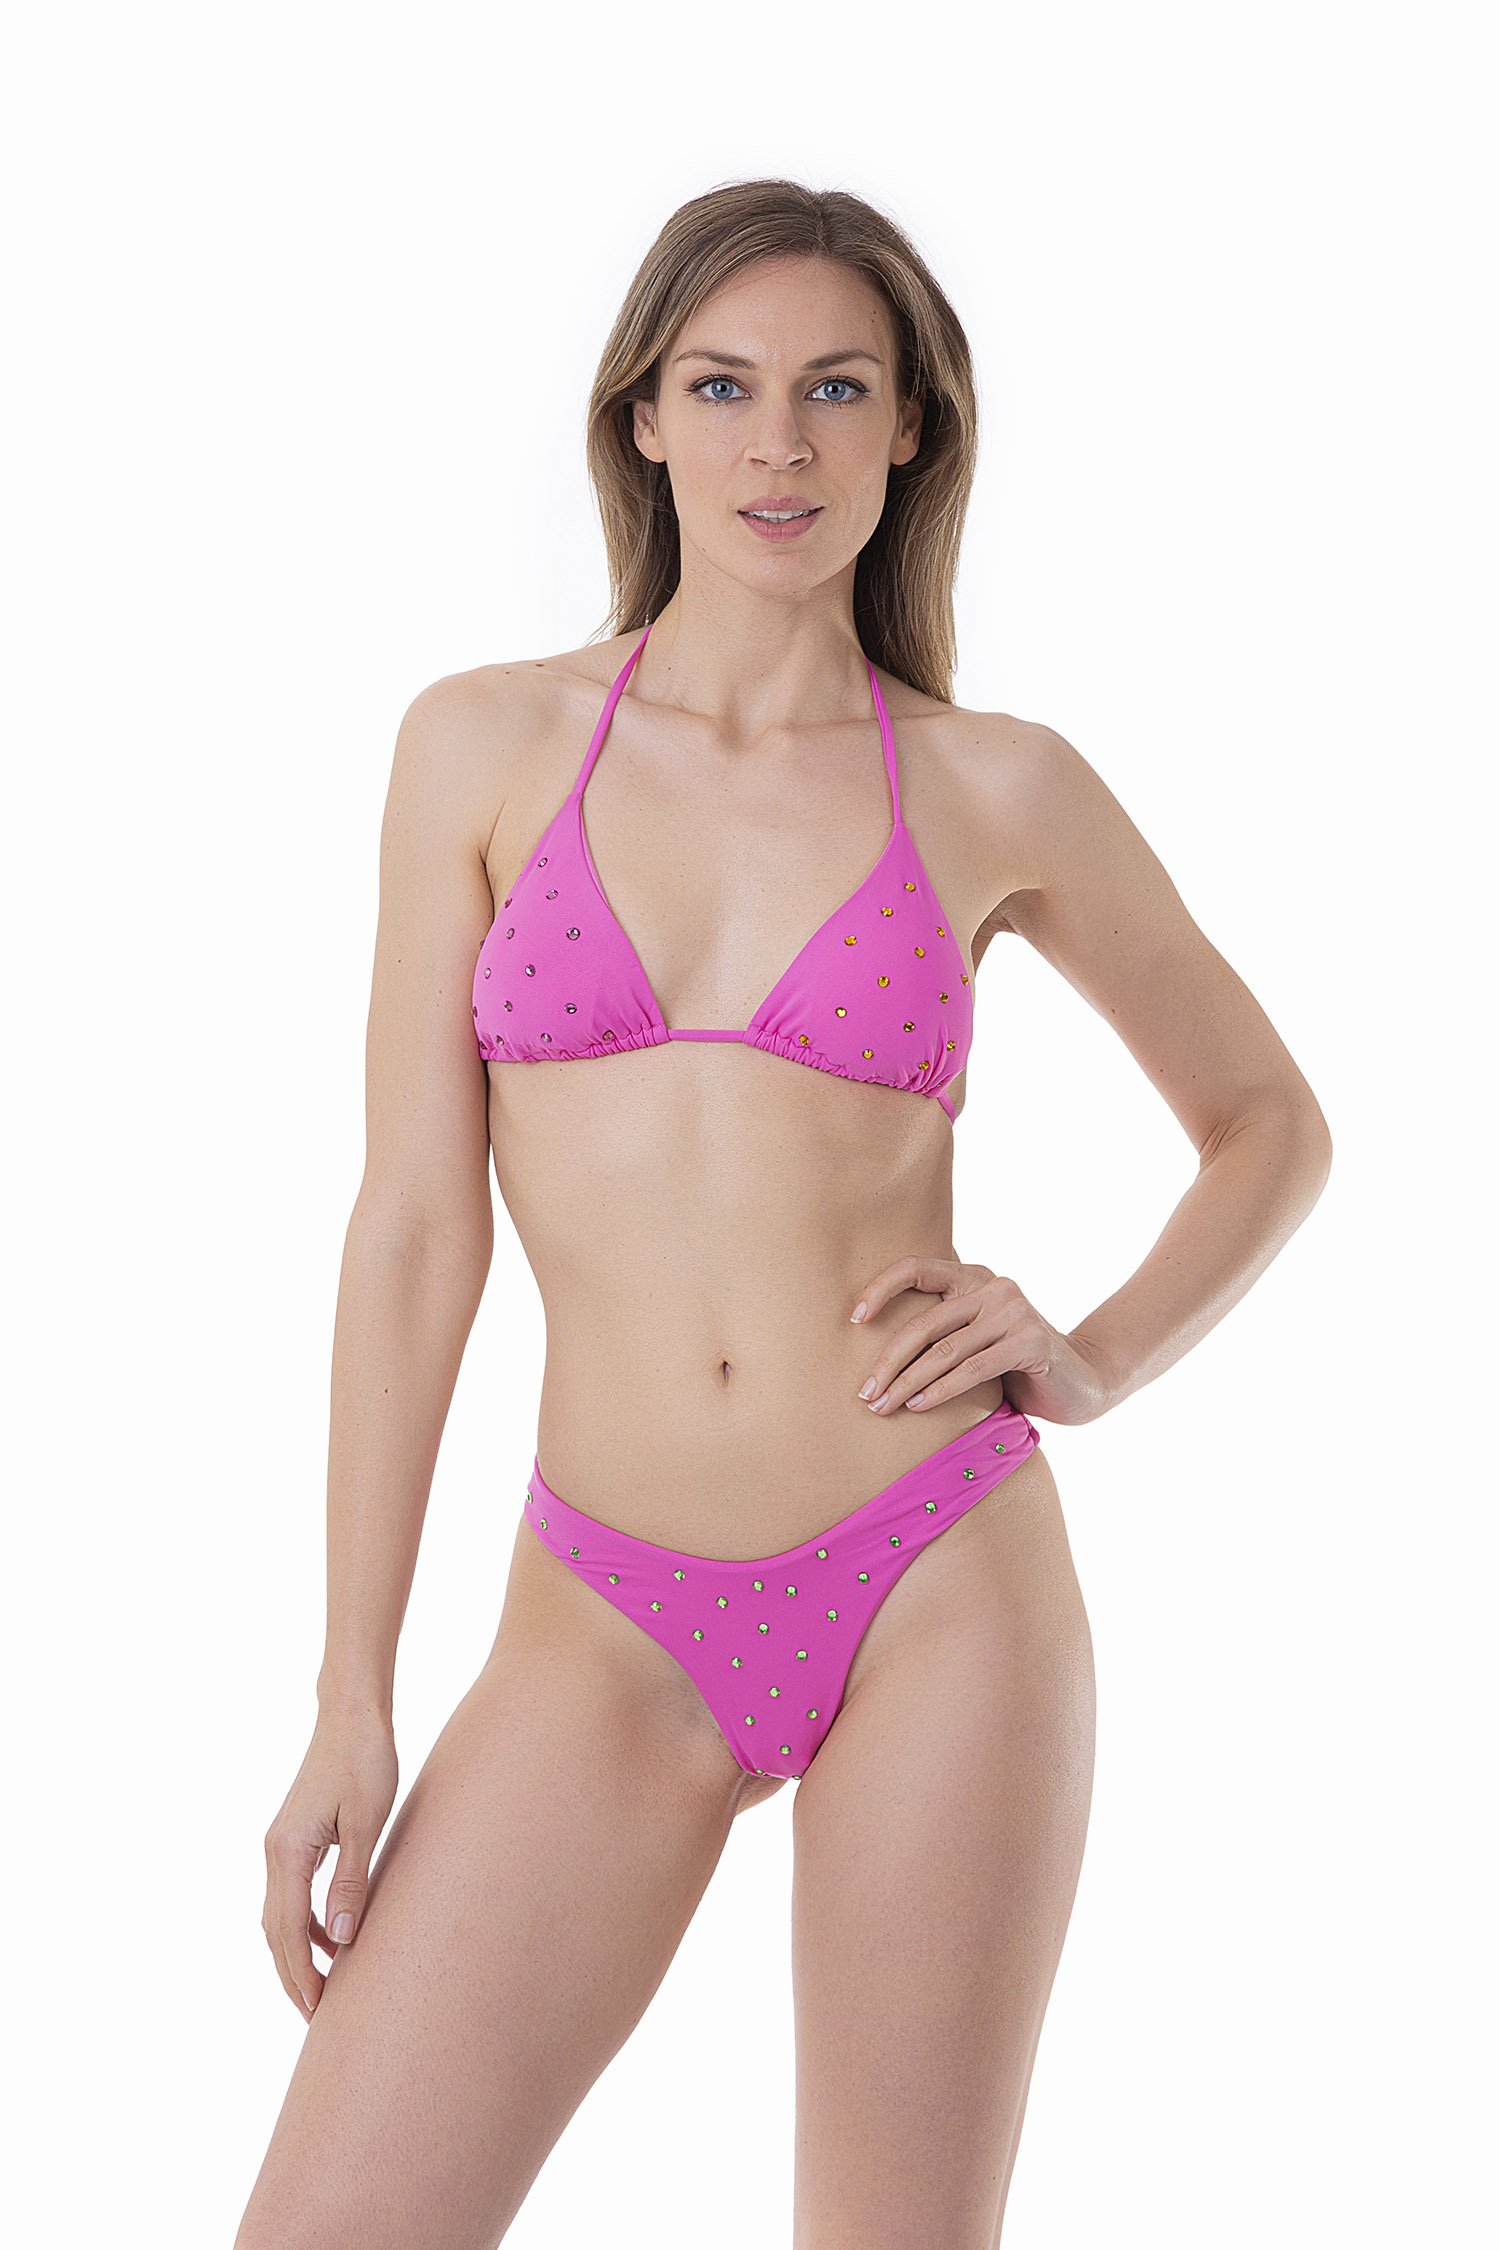 LUXE PLAIN COLOUR TRIANGLE BIKINI WITH COLOURED RHINESTONES - Rosa Camelia